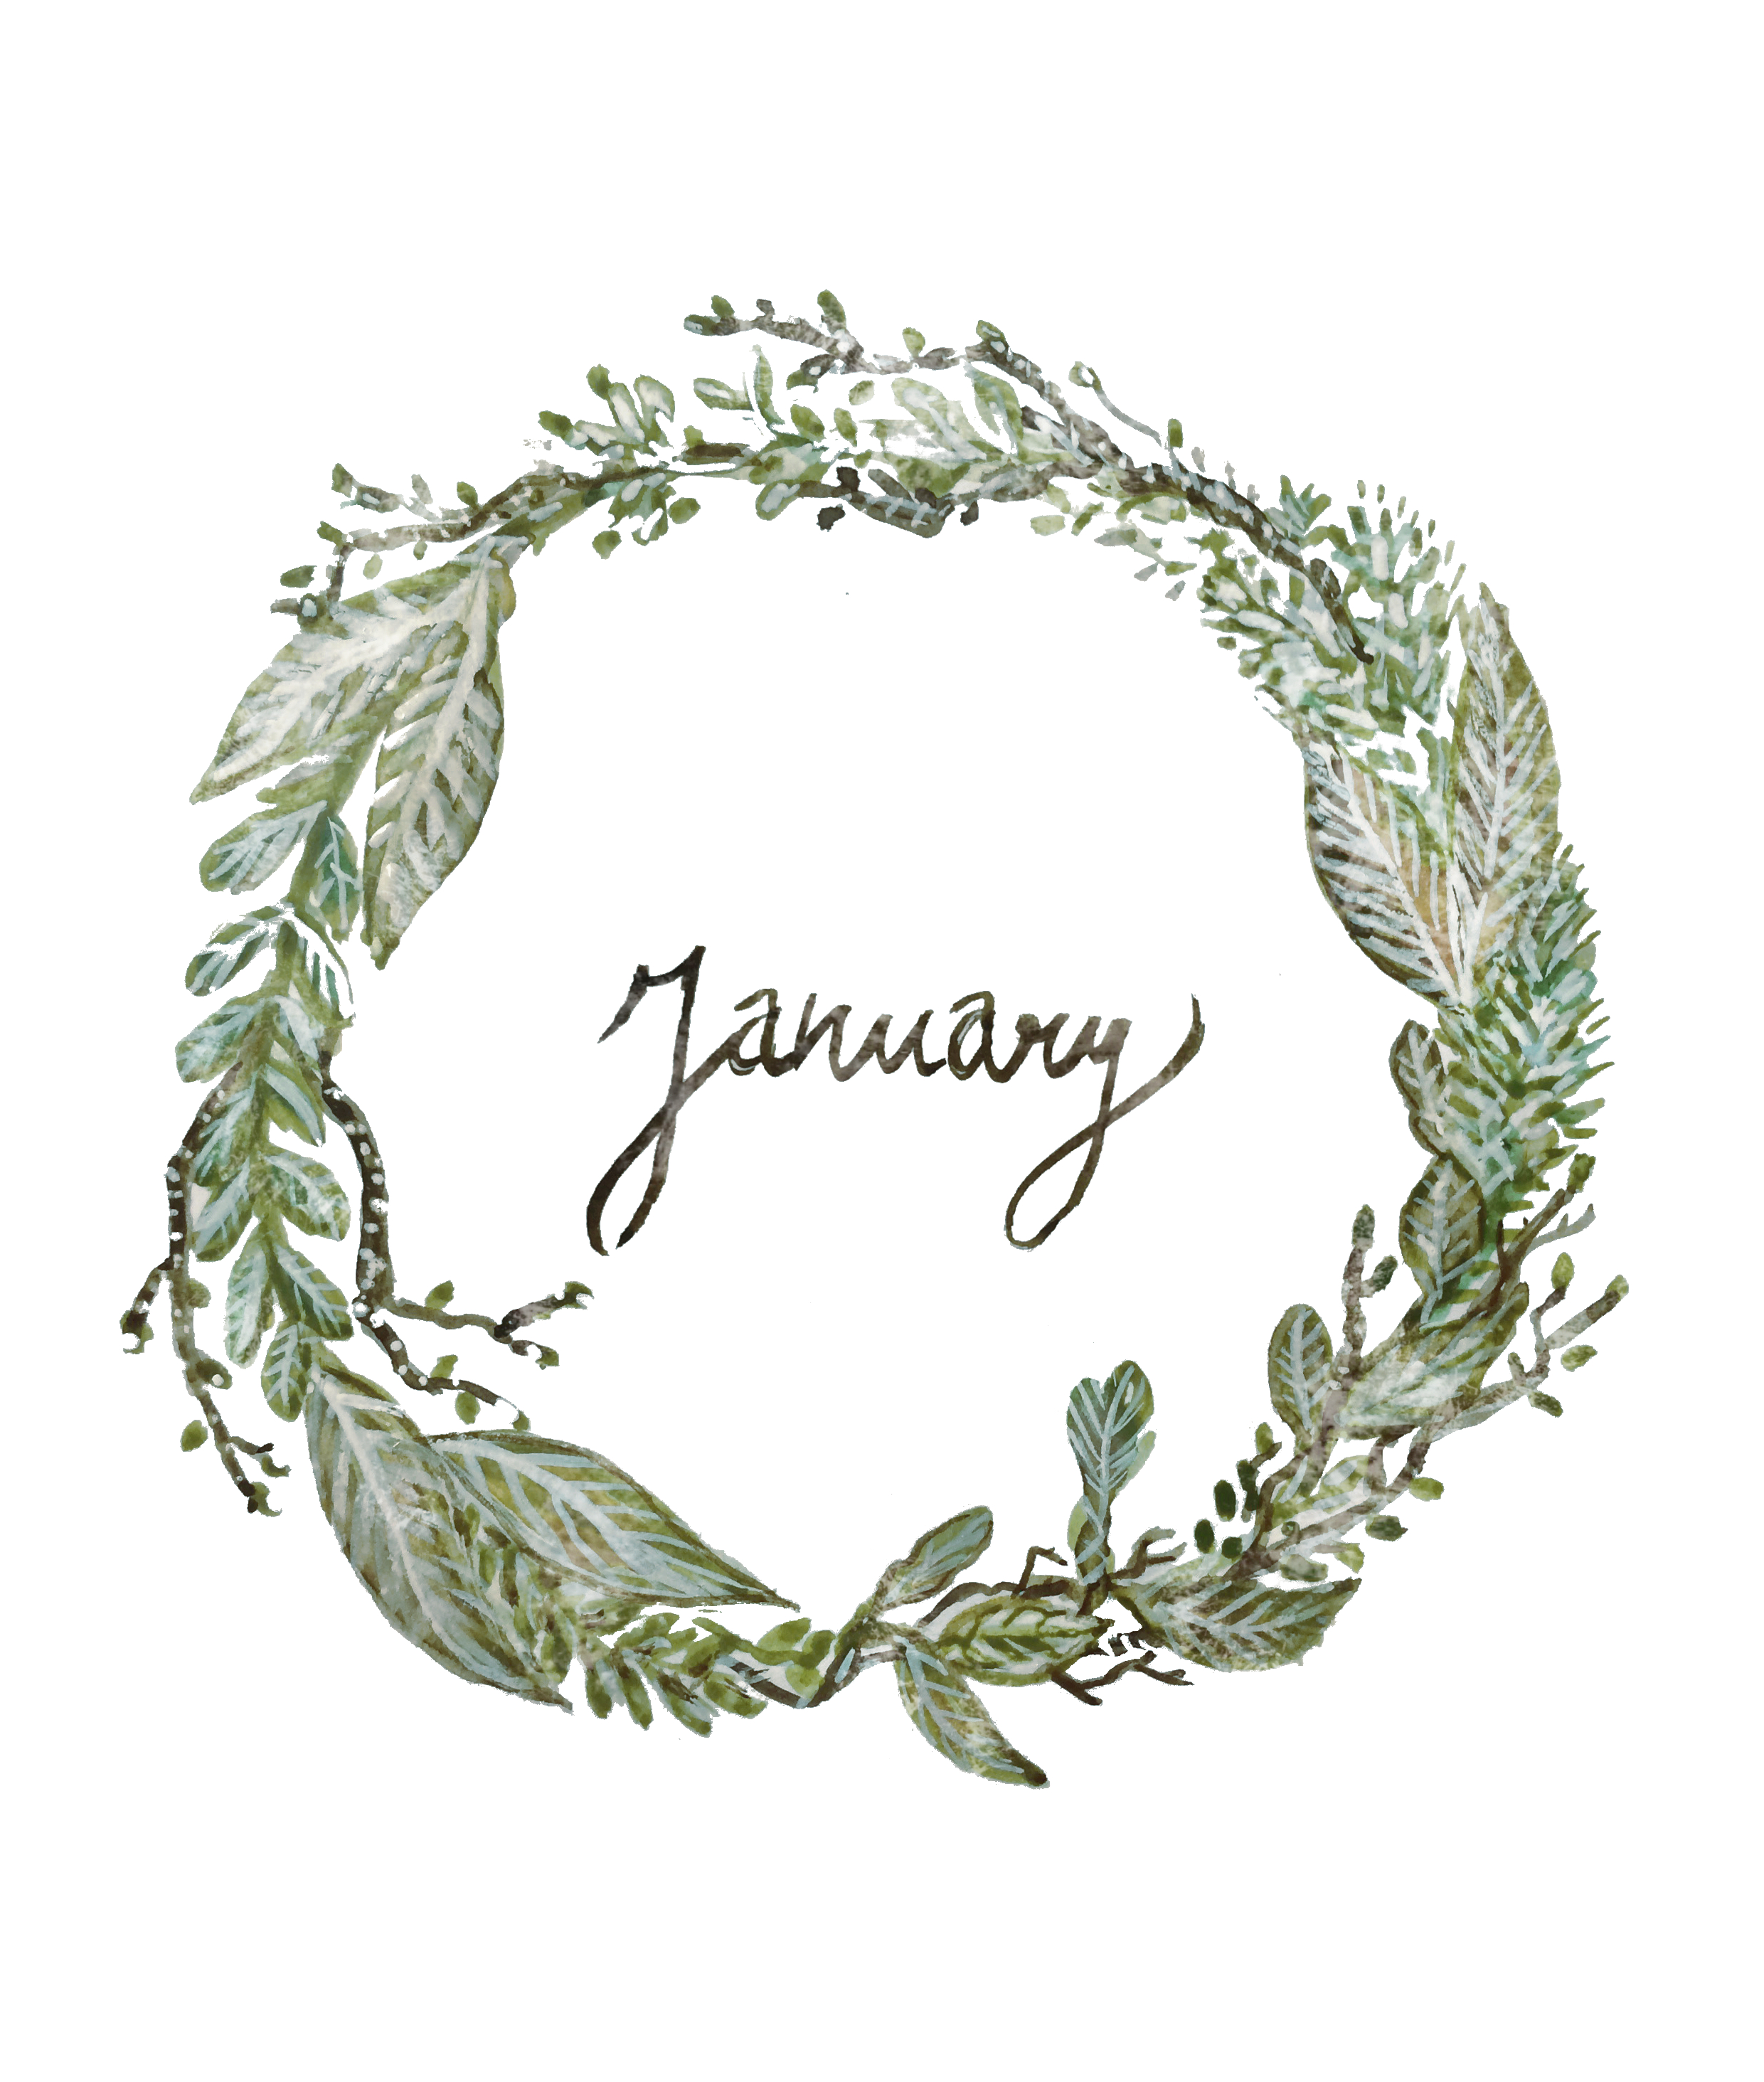 January by Emilie Maguin for Seeds and Stitches blog